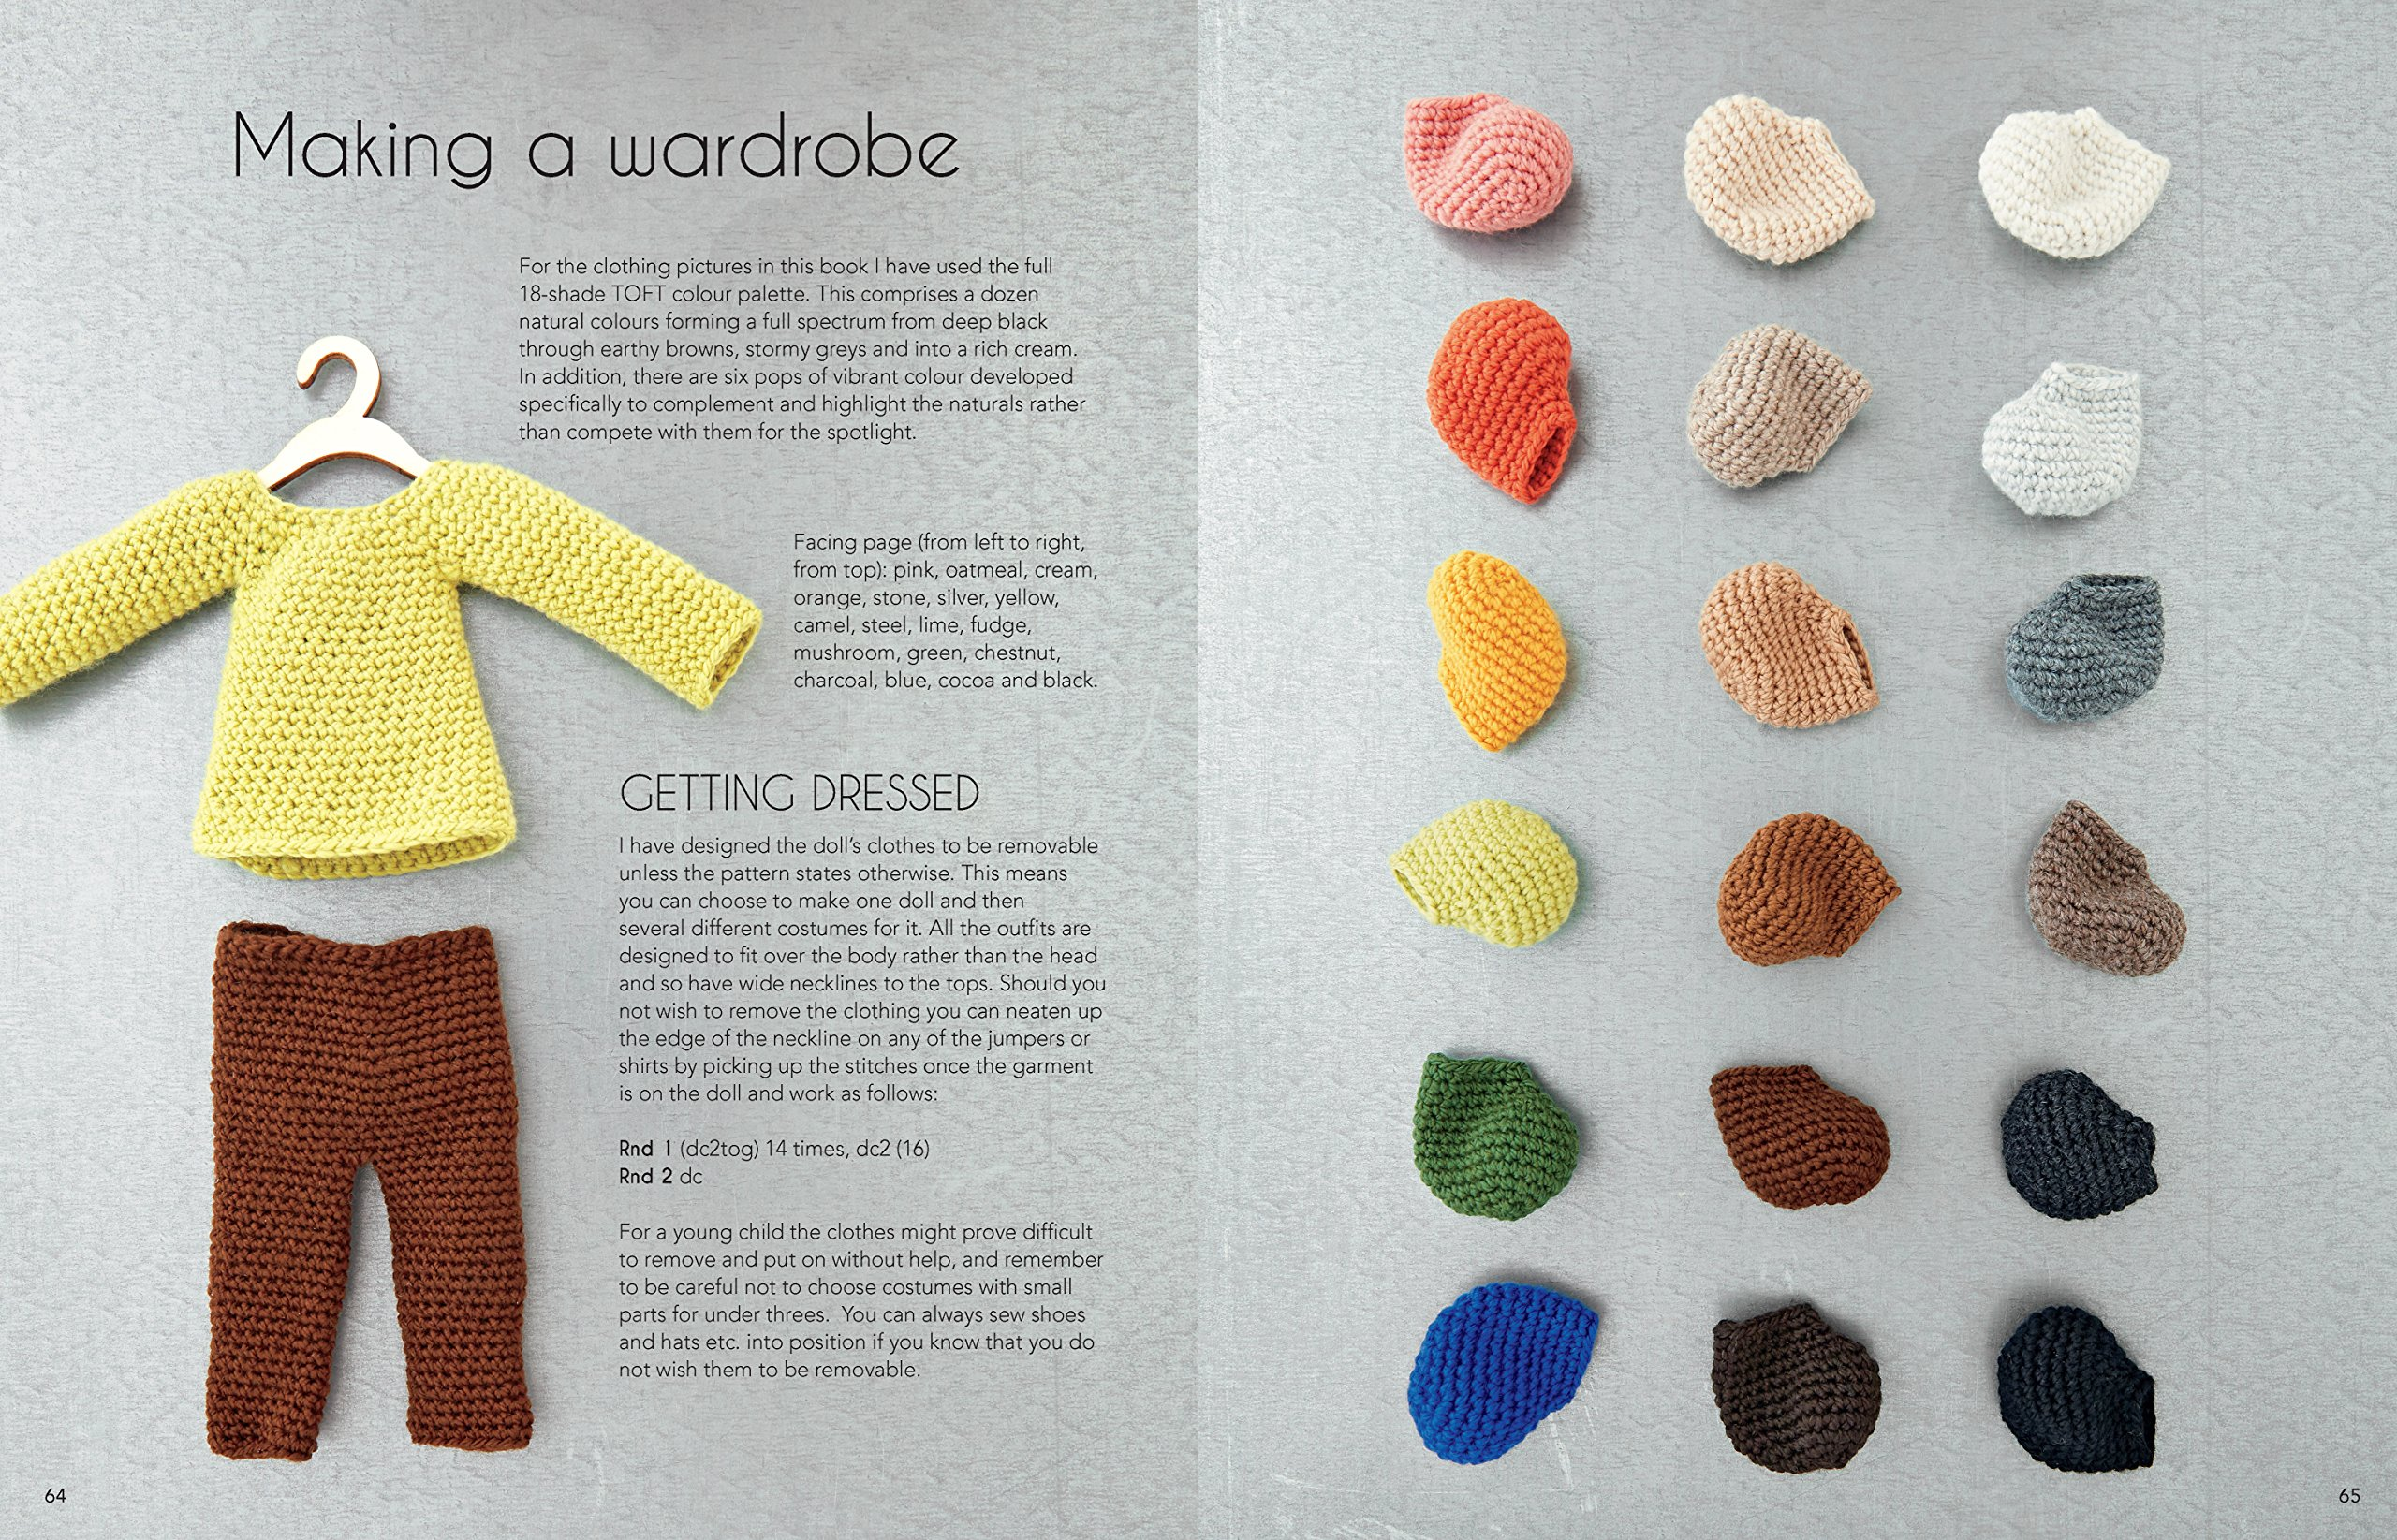 Edward\'s Crochet Doll Emporium: Flip the mix-and-match patterns to ...